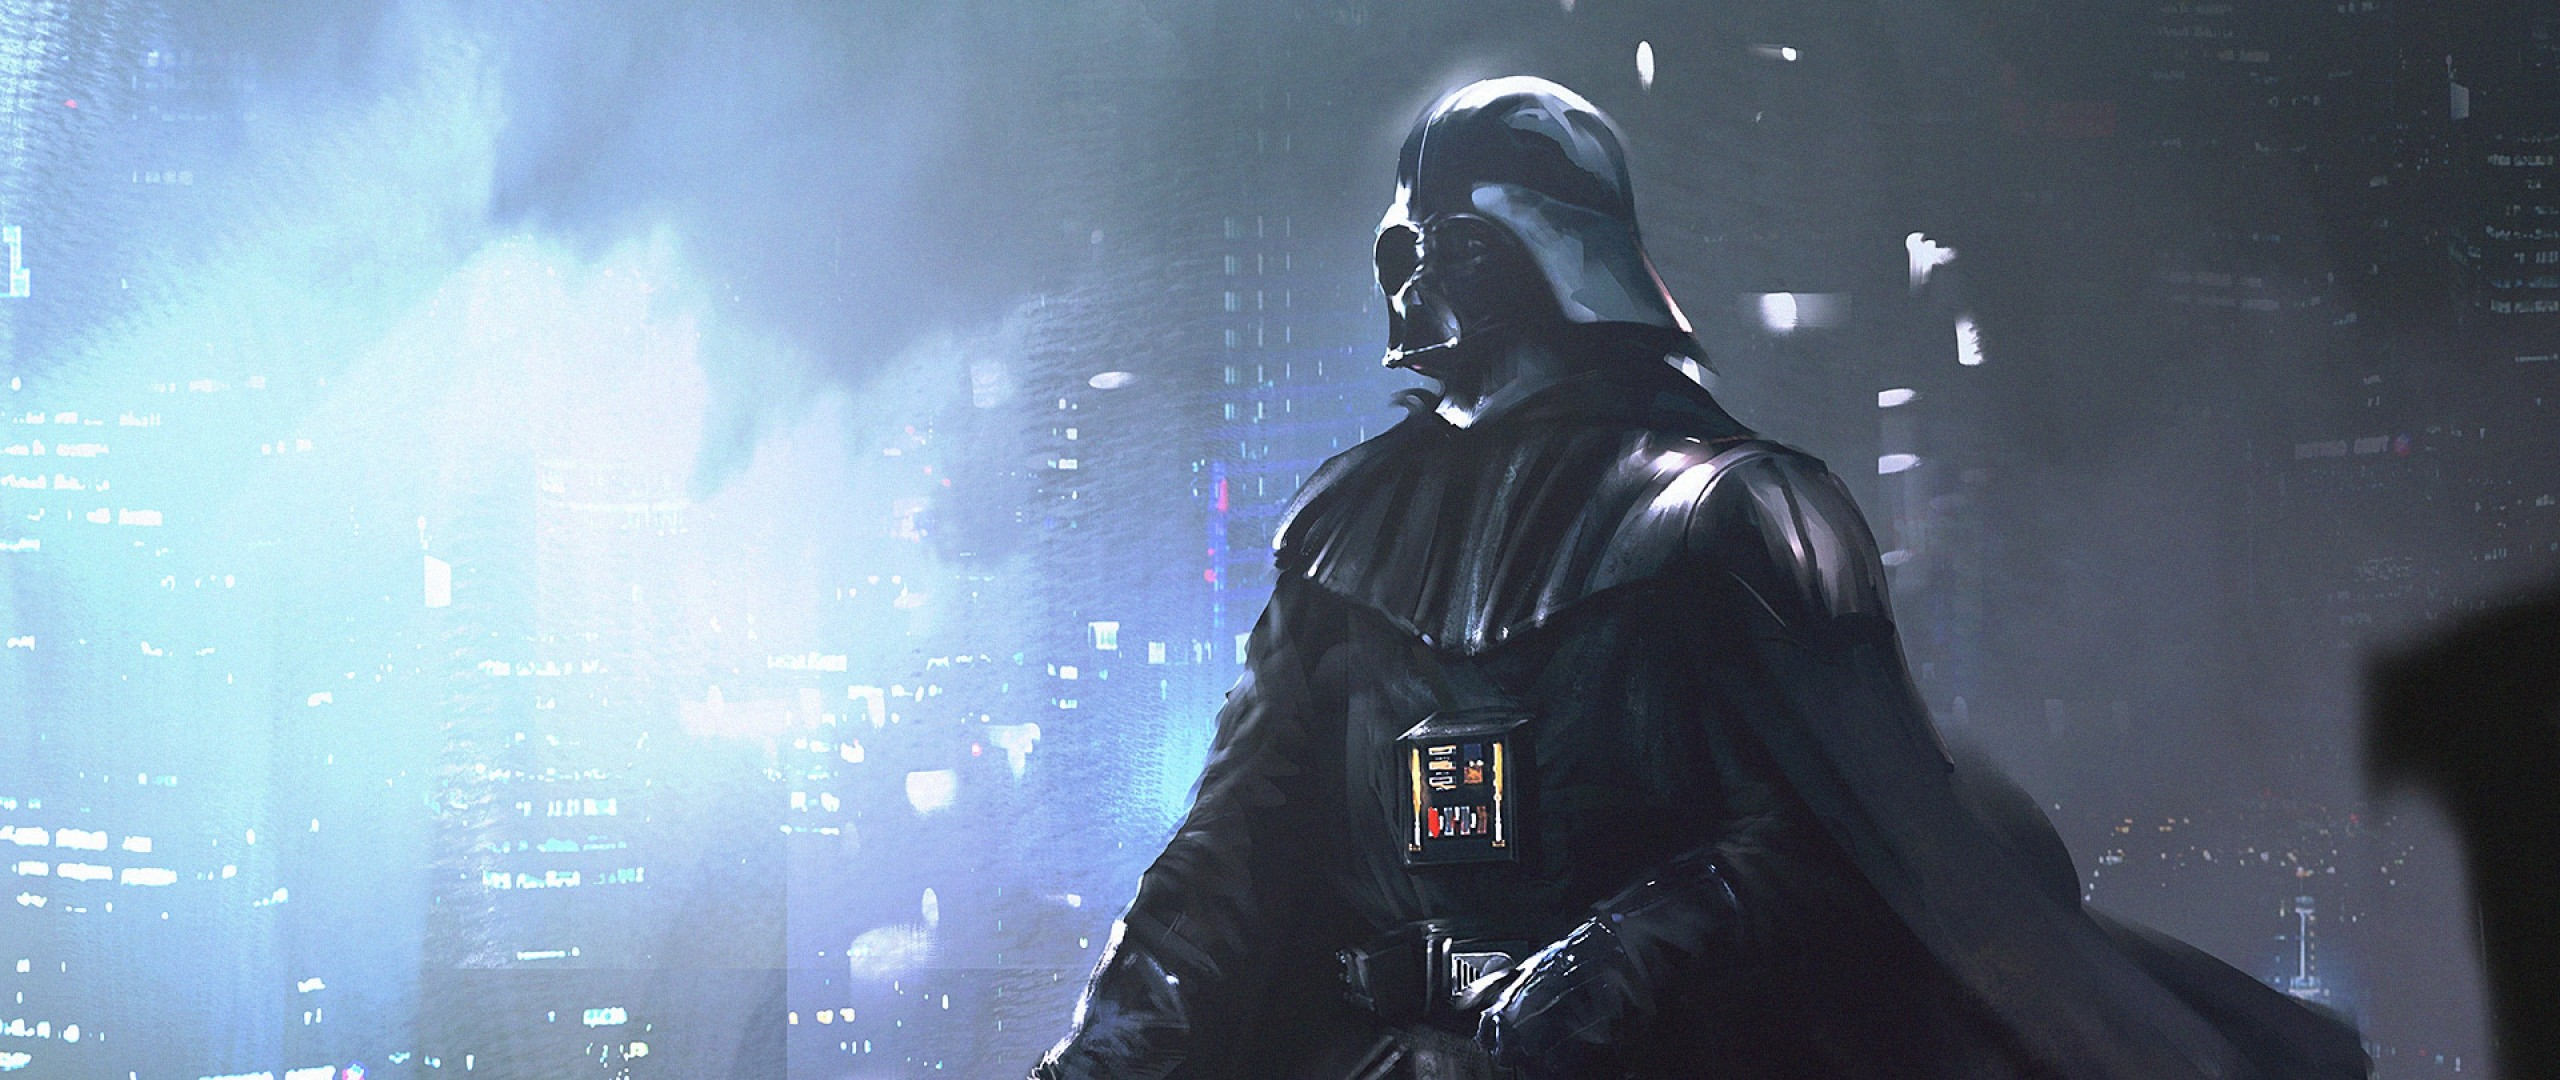 2560x1080  Wallpaper star wars, darth vader, anakin skywalker